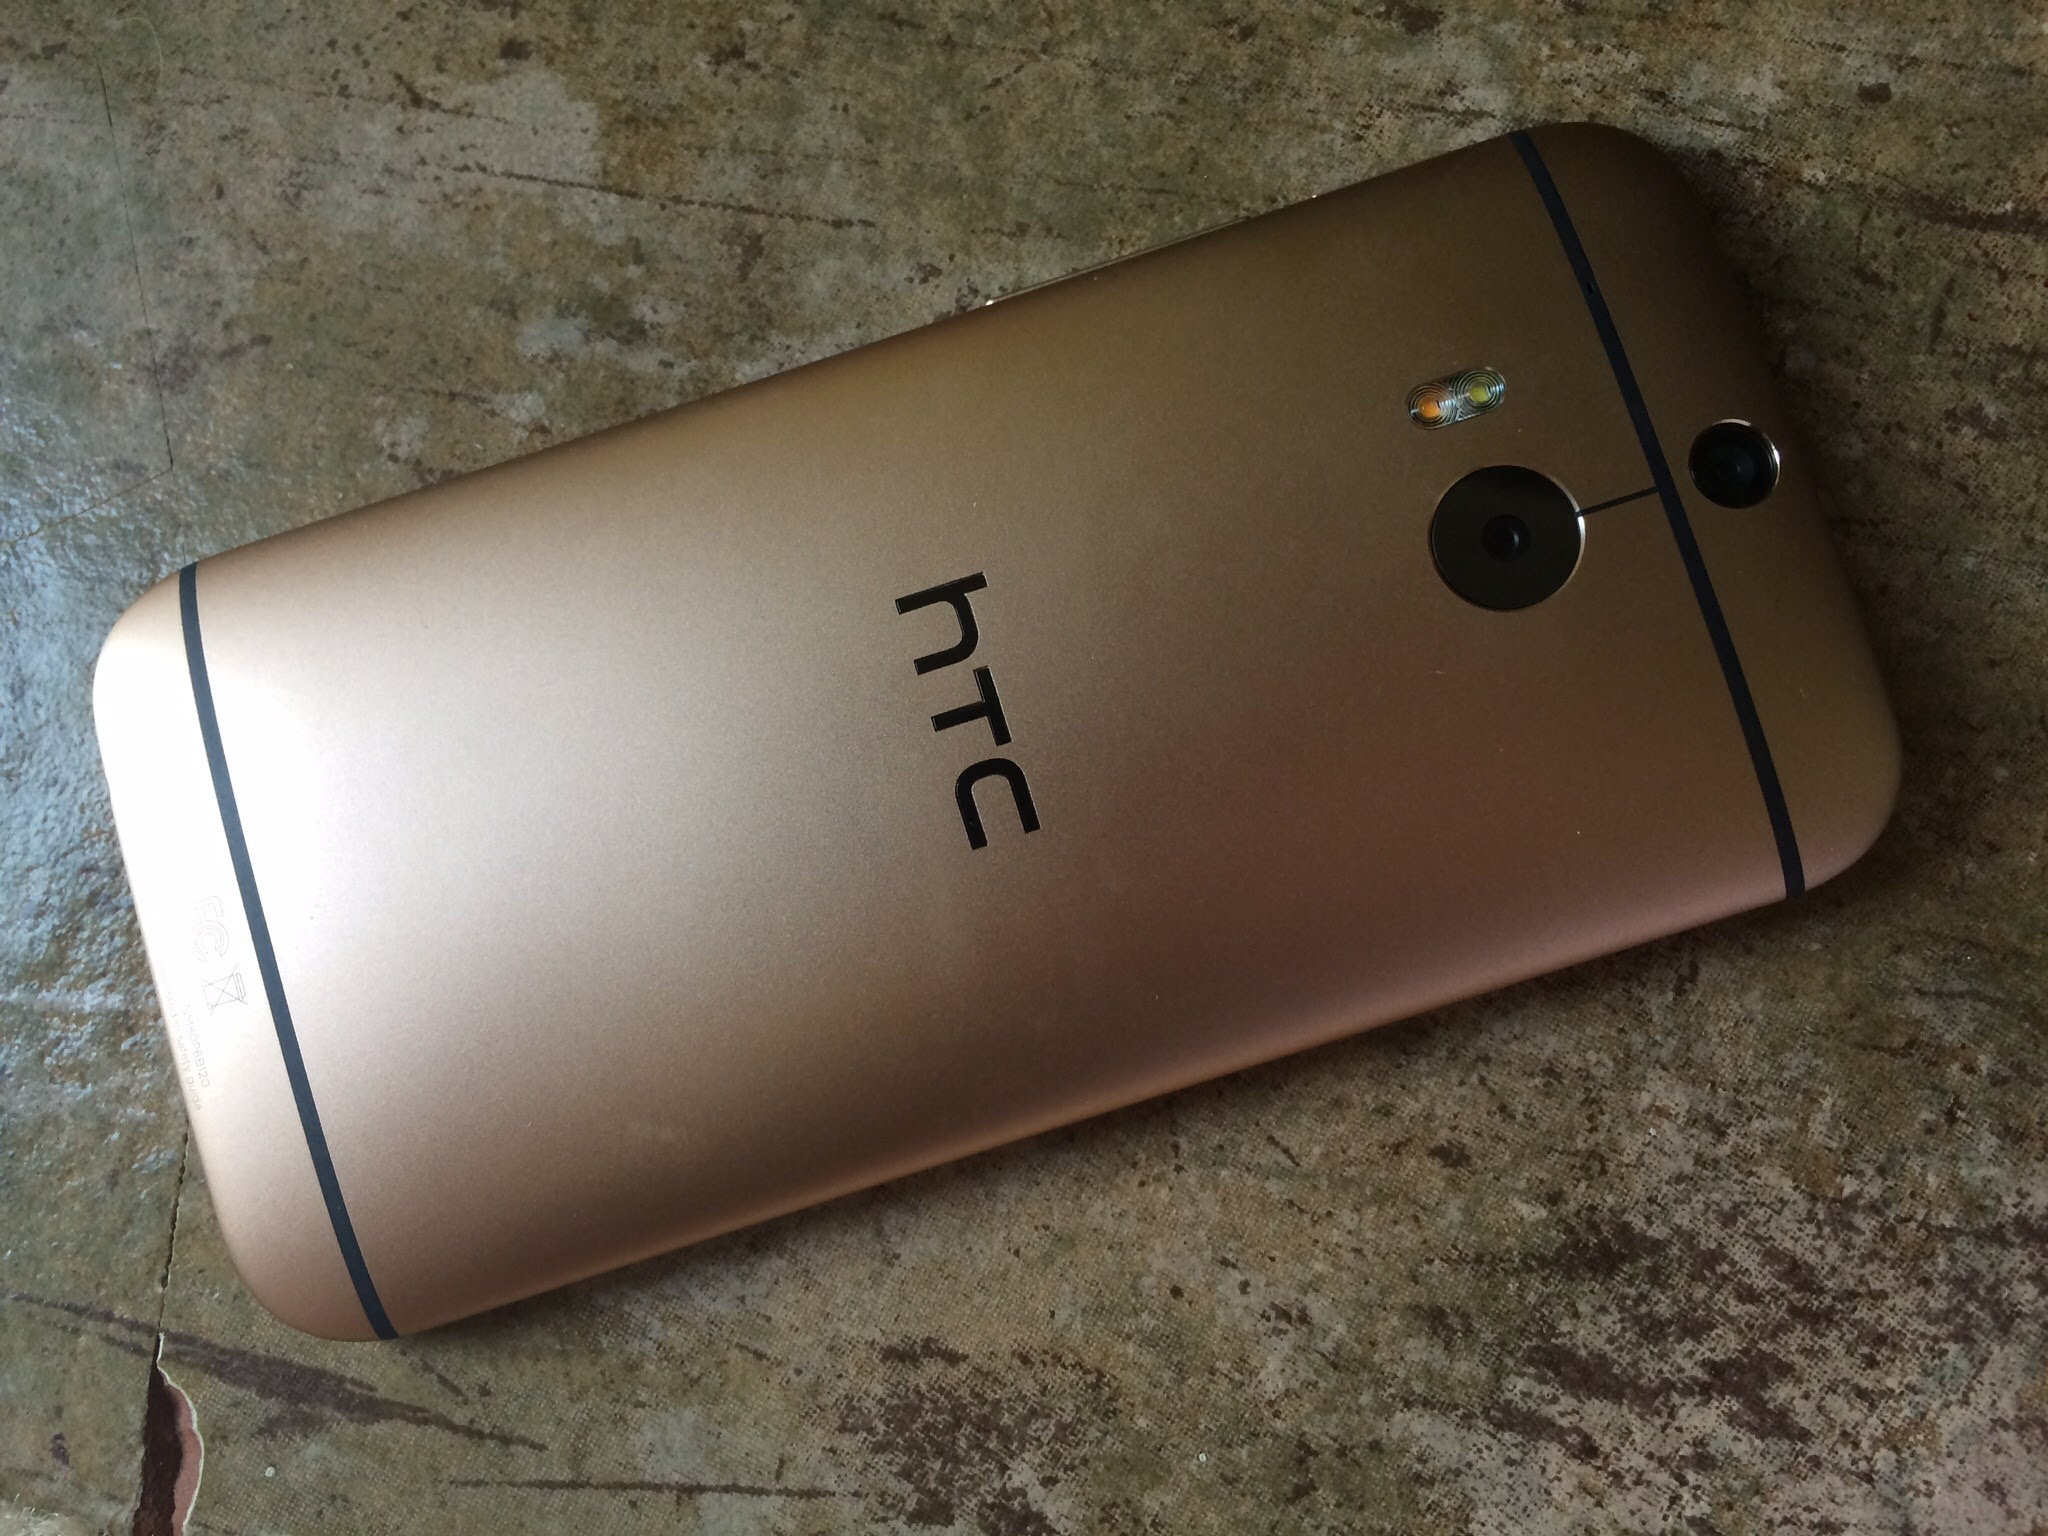 Defective HTC One M8: Is Yours the Same?